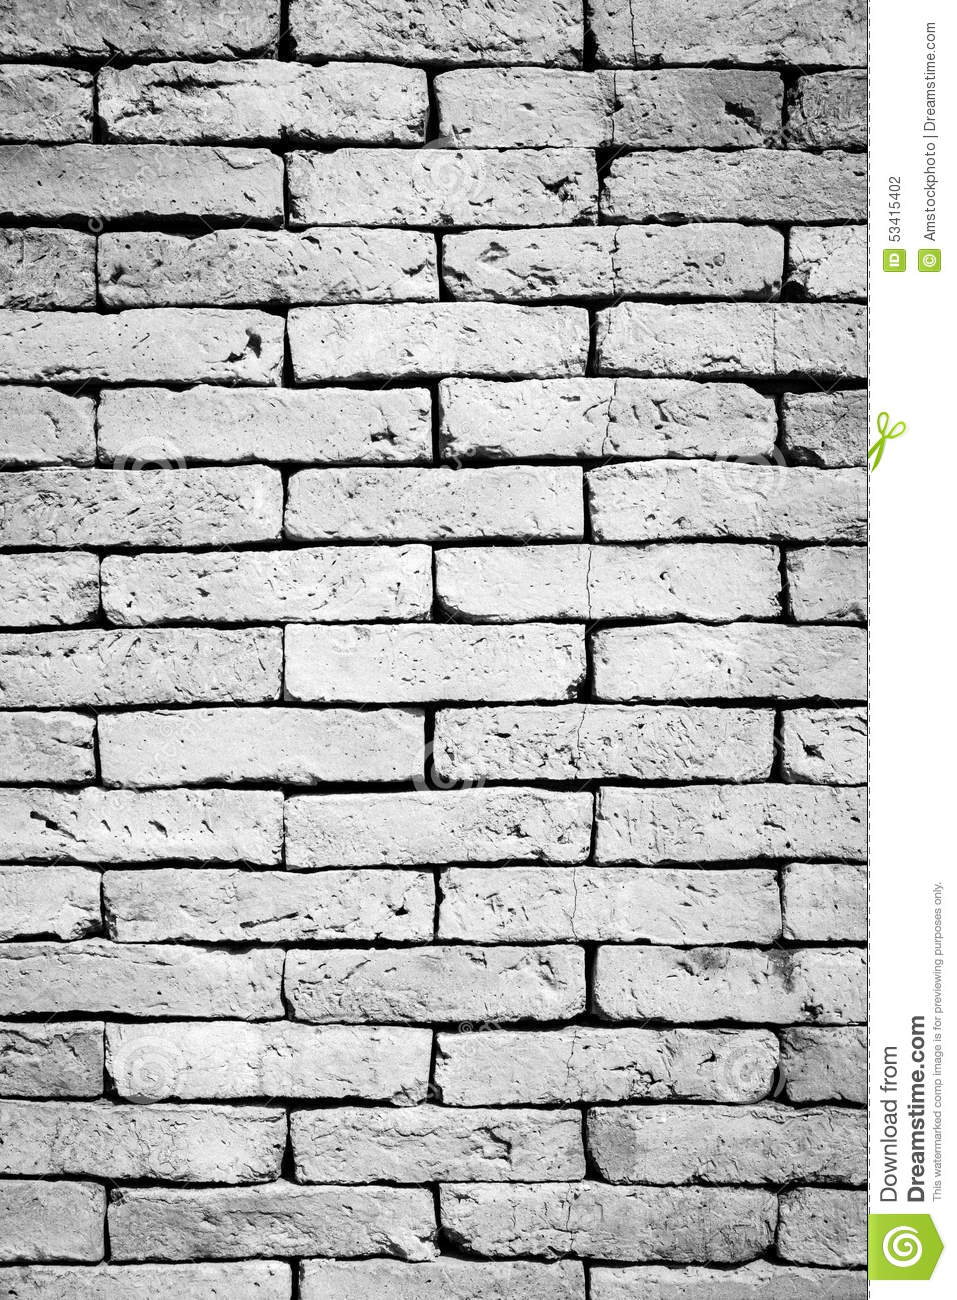 Black And White Brick Wall Background Stock Photo - Image ...